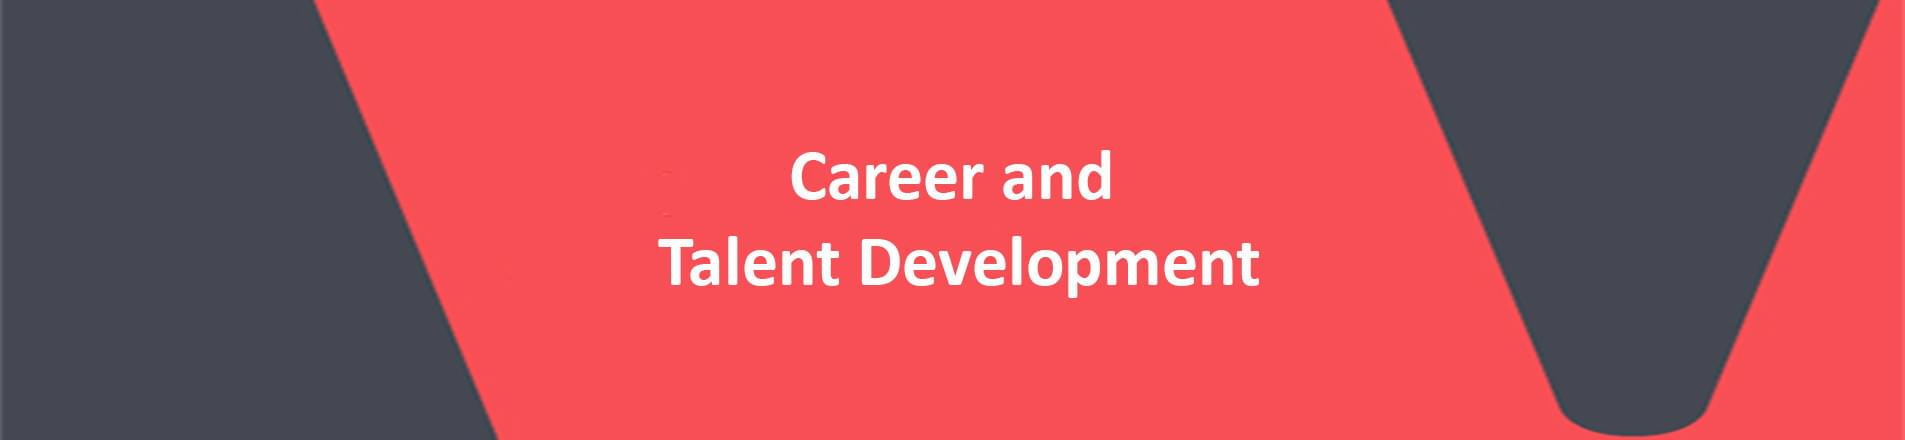 Red banner with white text reading career and talent development